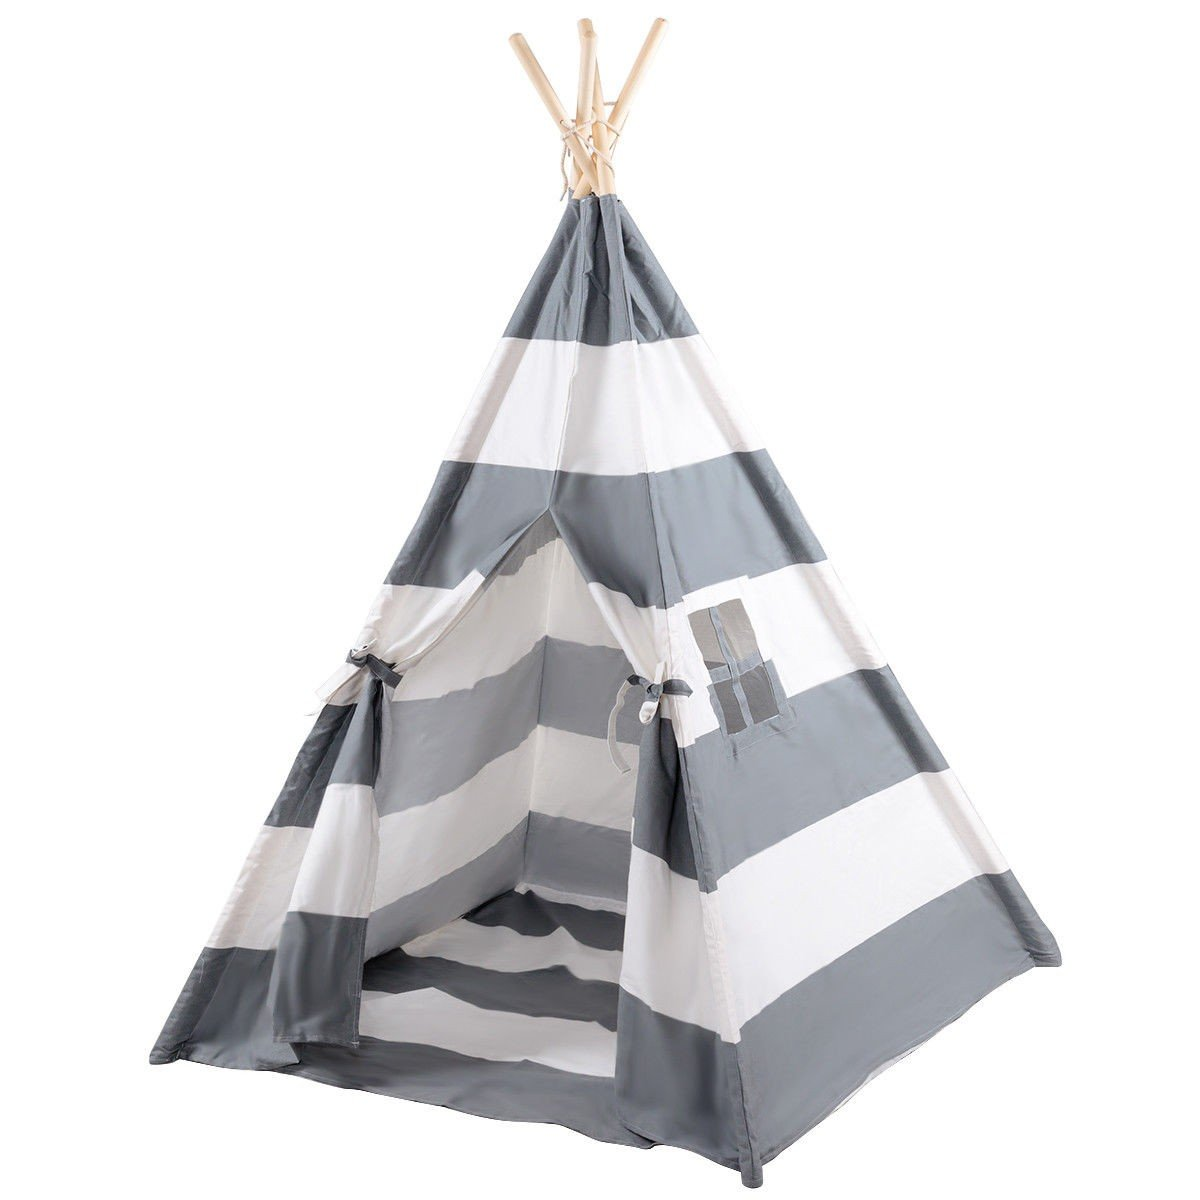 COSTWAY Kids Indian Play Tent Teepee Children Girl Boy Play House Sleeping Dome Bag Gray + FREE E - Book Only By eight24hours